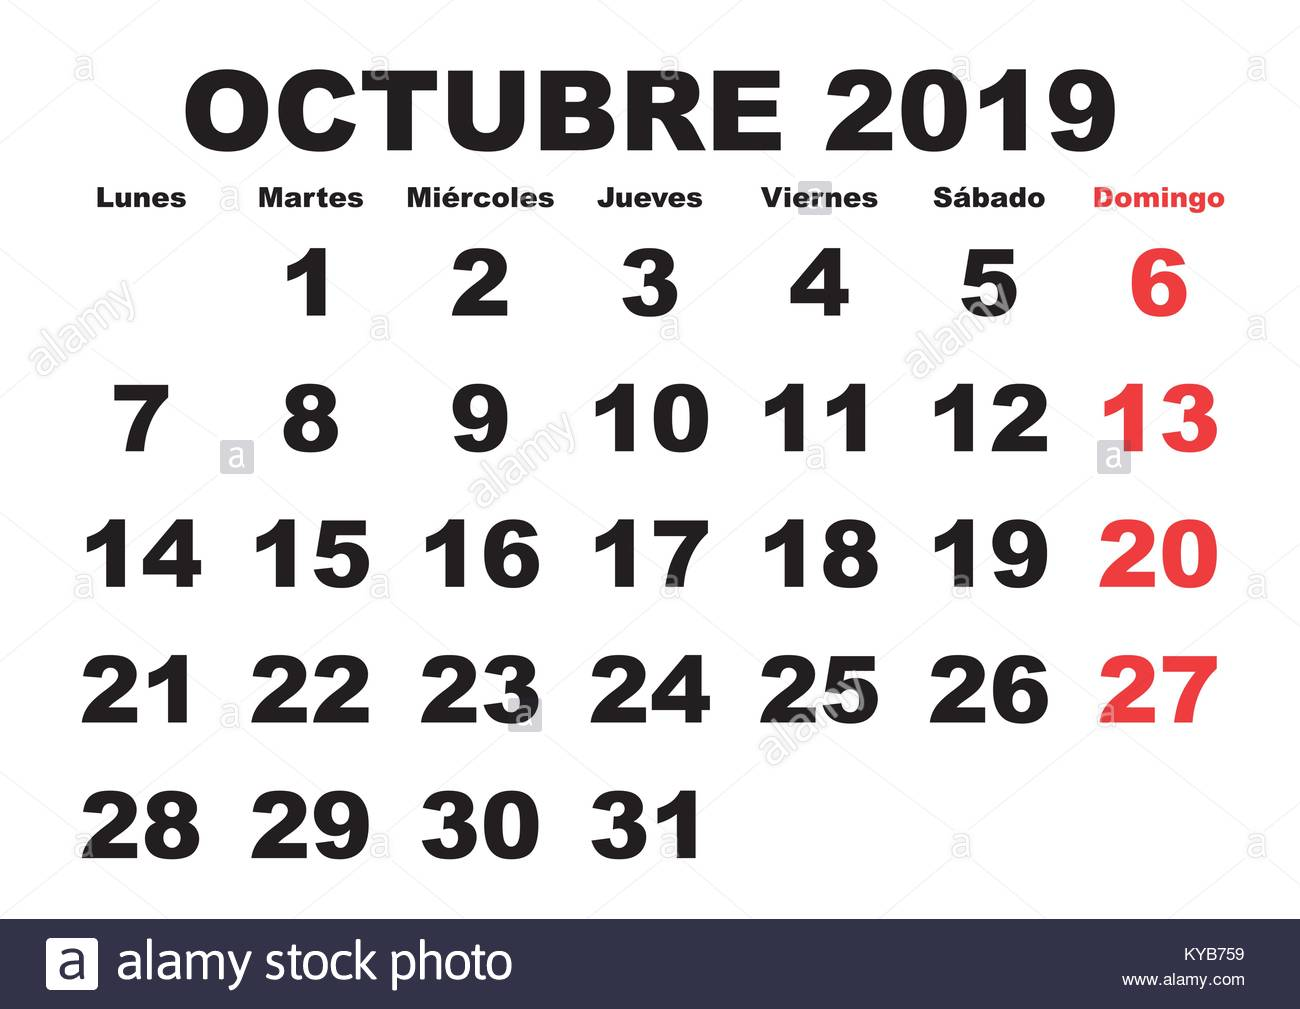 2019 October Calendar.October Month In A Year 2019 Wall Calendar In Spanish Octubre 2019